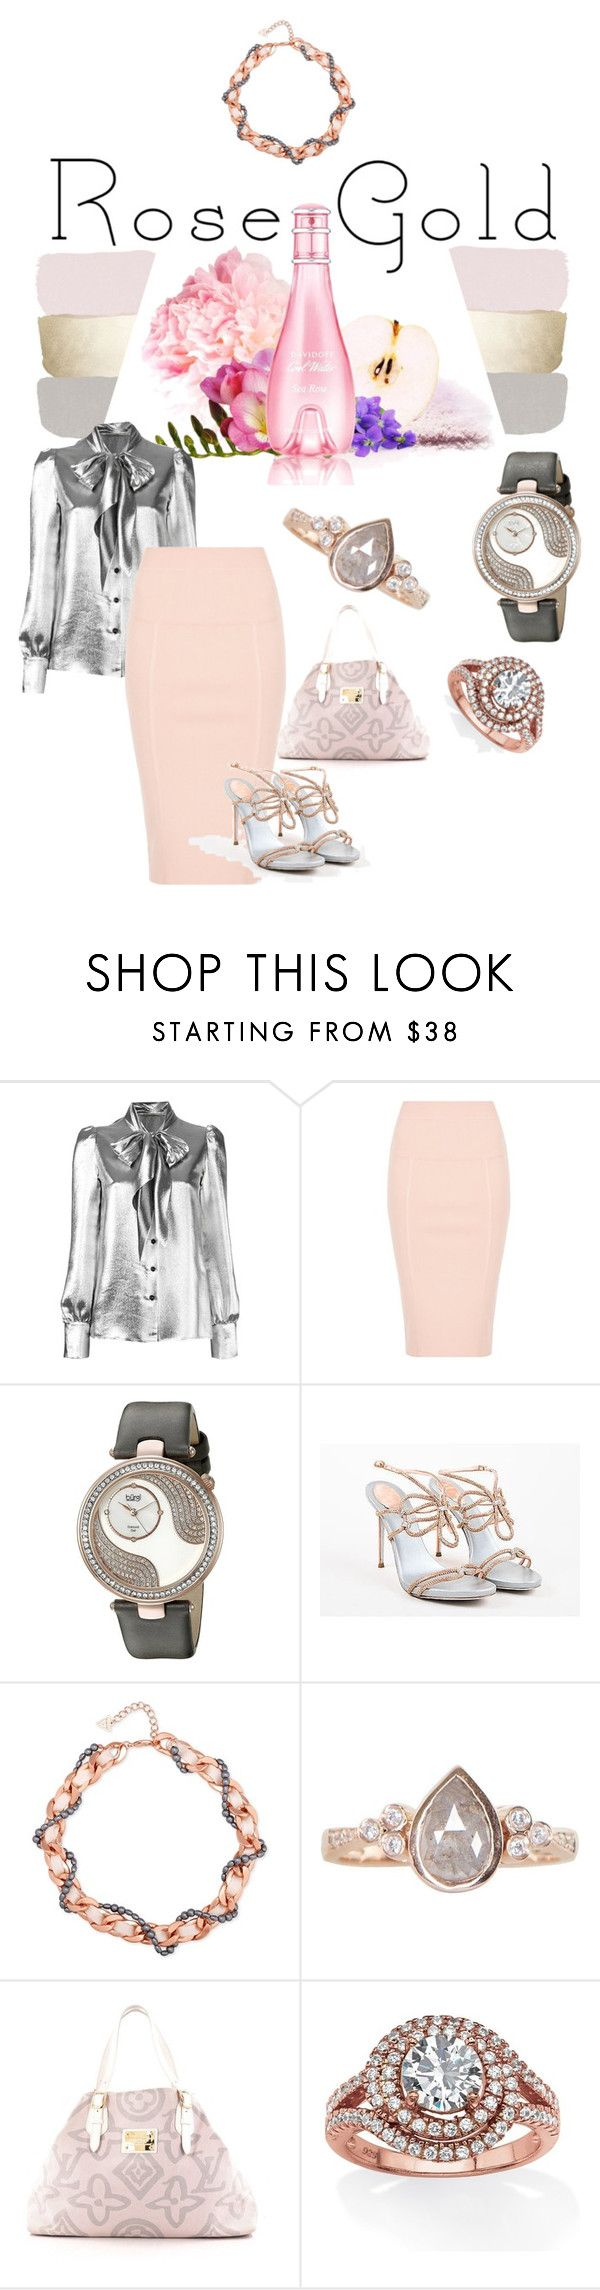 """""""Rose Gold"""" by tinydancer2018 ❤ liked on Polyvore featuring Yves Saint Laurent, bürgi, René Caovilla, GUESS, Luna Skye, Louis Vuitton, Palm Beach Jewelry and rosegold"""